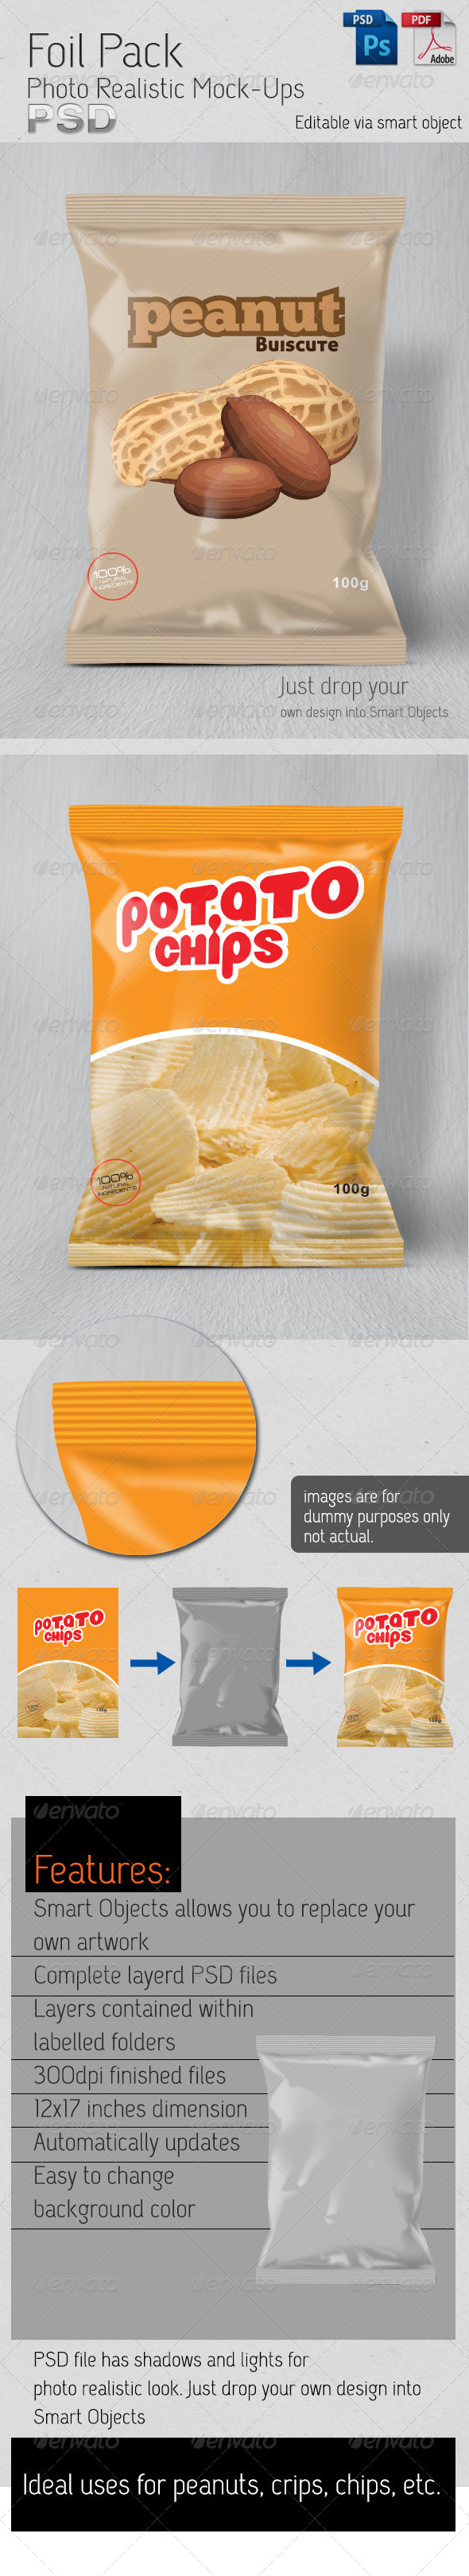 Foil Pack Photo Realistic Mock-Up - Food and Drink Packaging